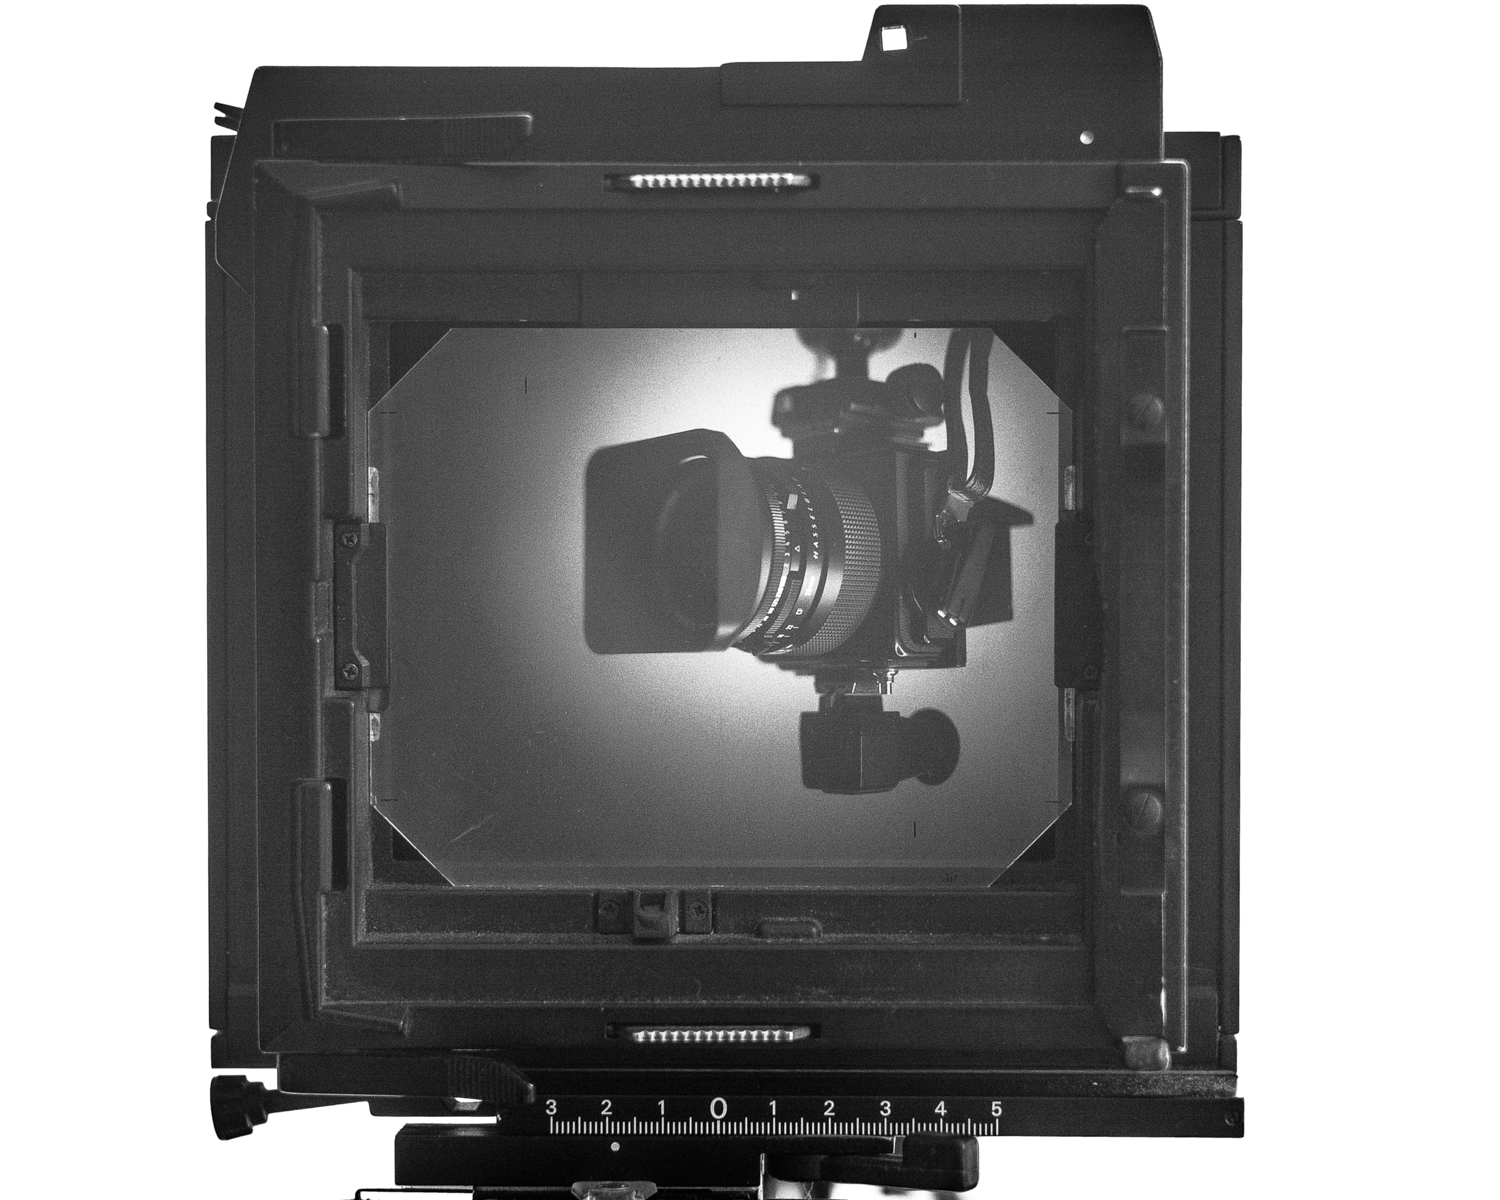 Hasselblad SWC on 4x5